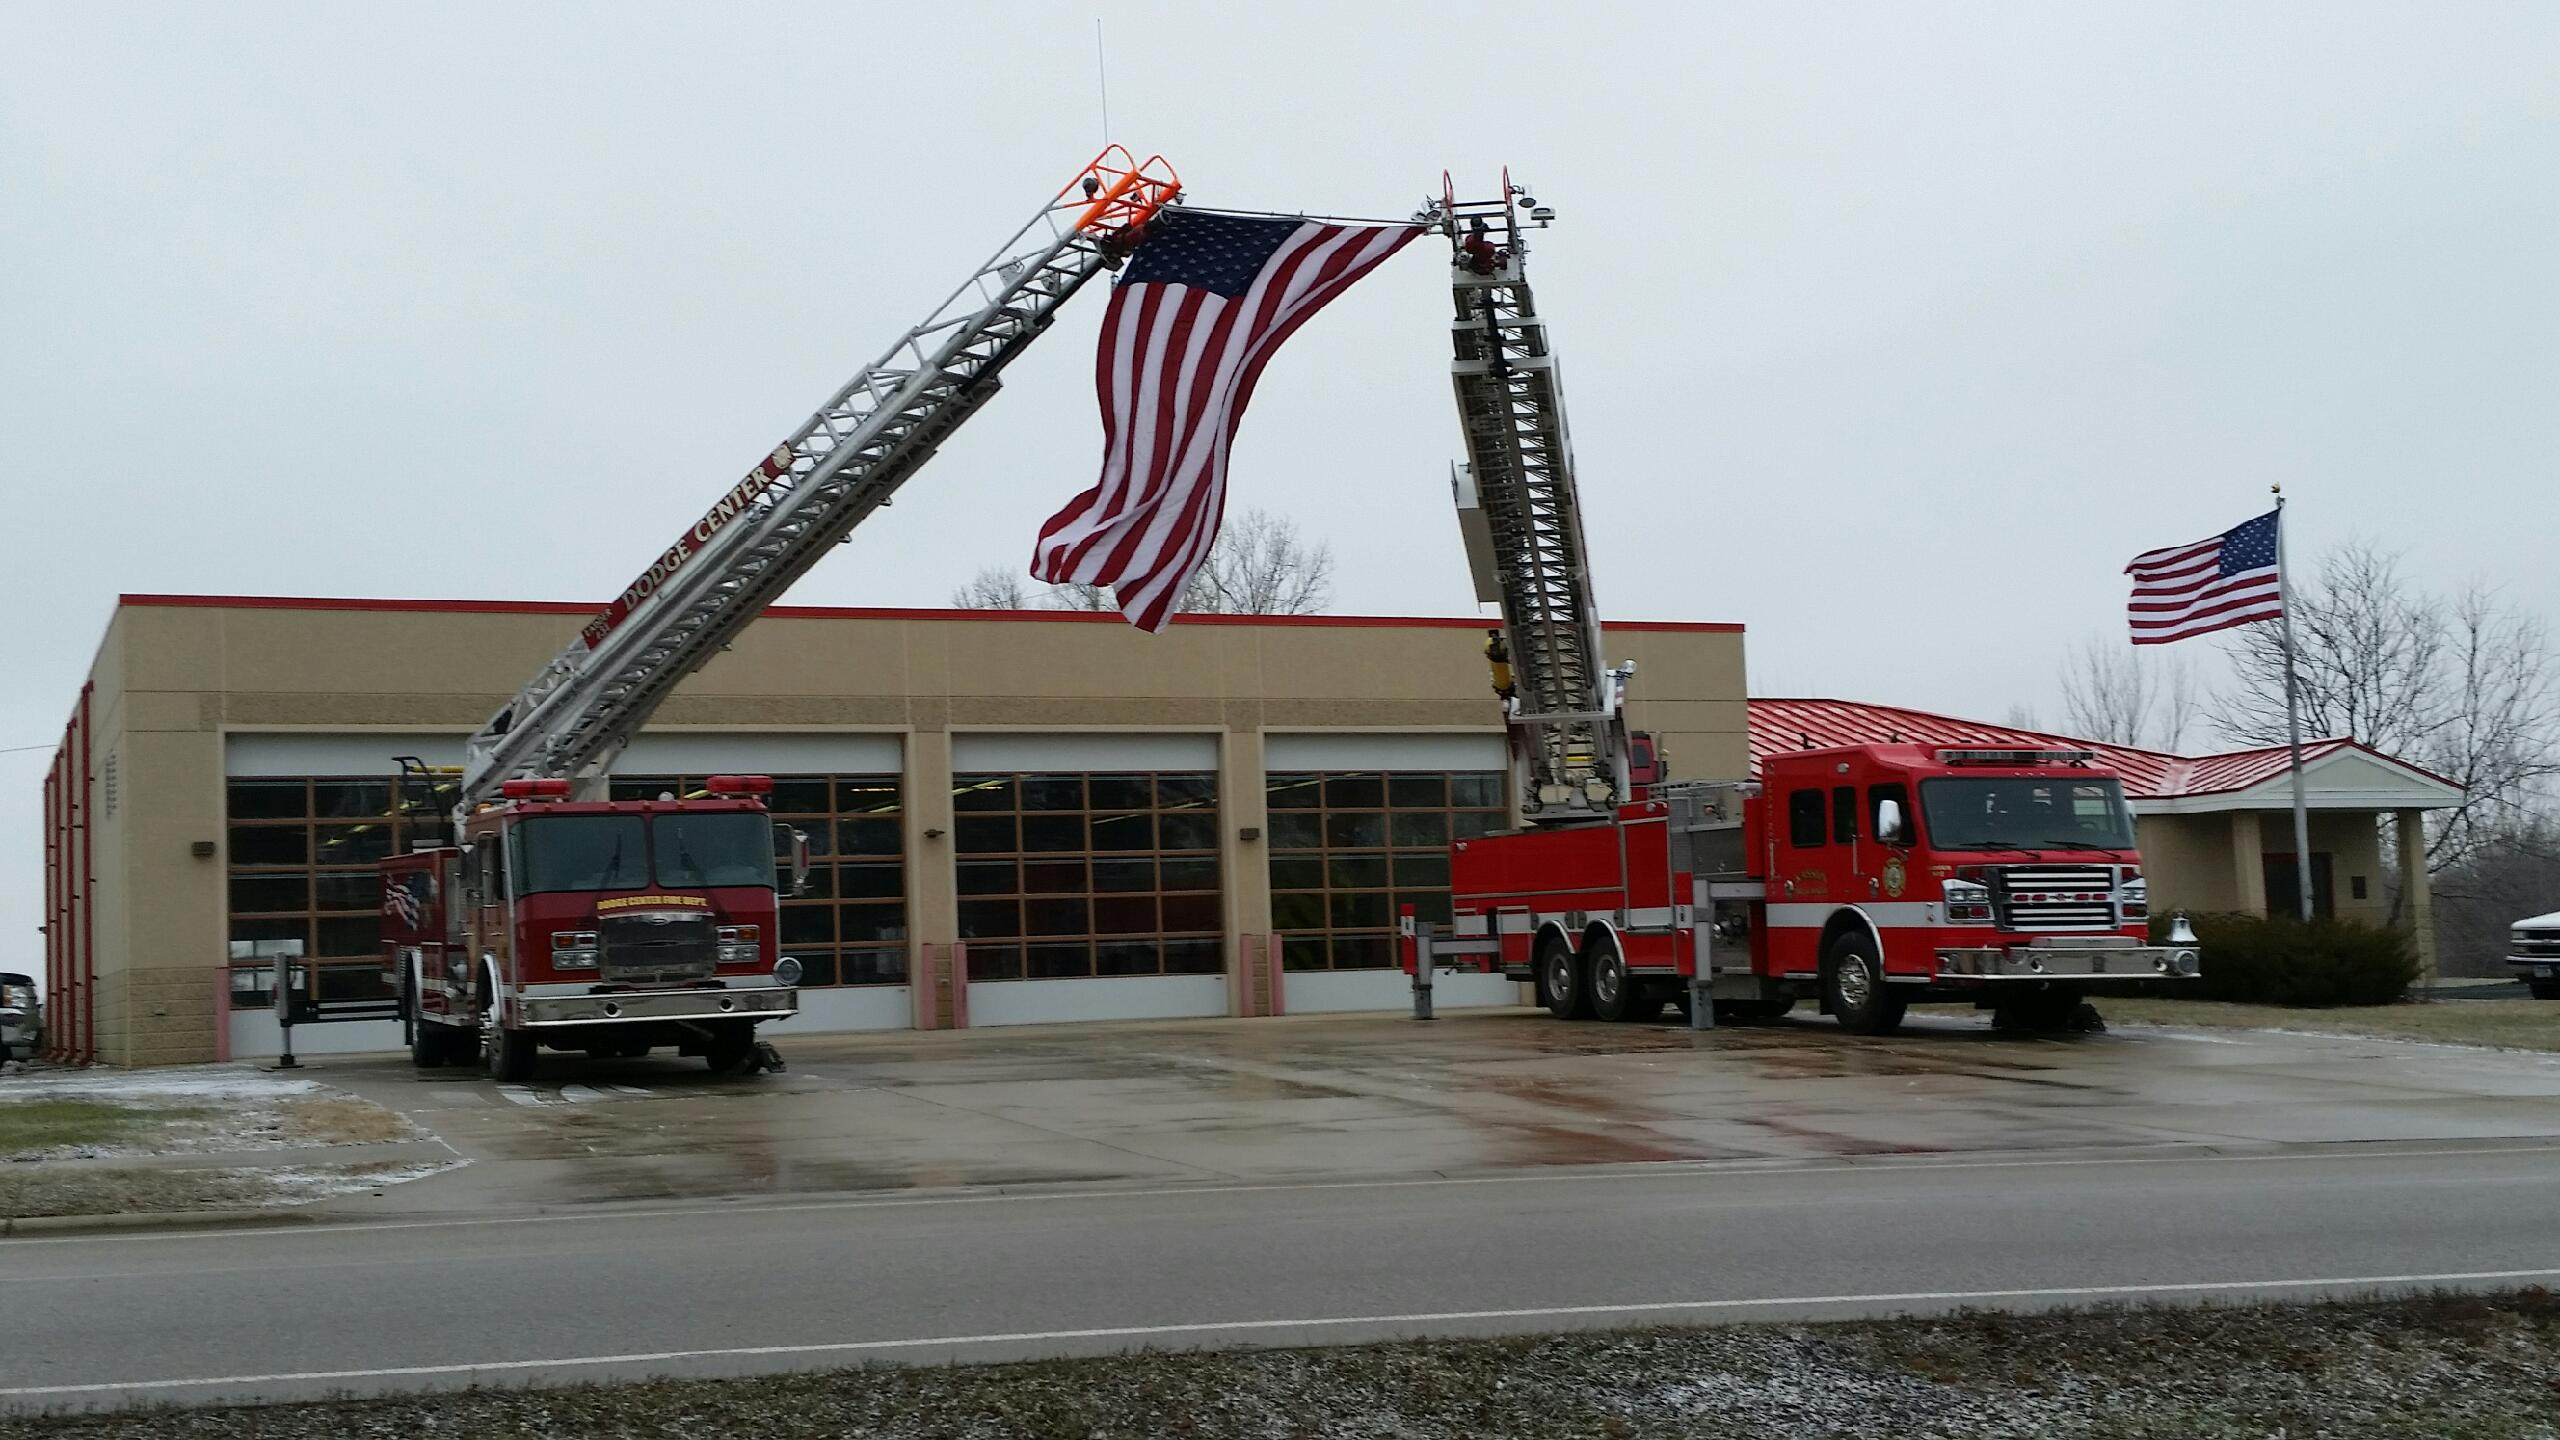 Fire Engines Draping American Flag